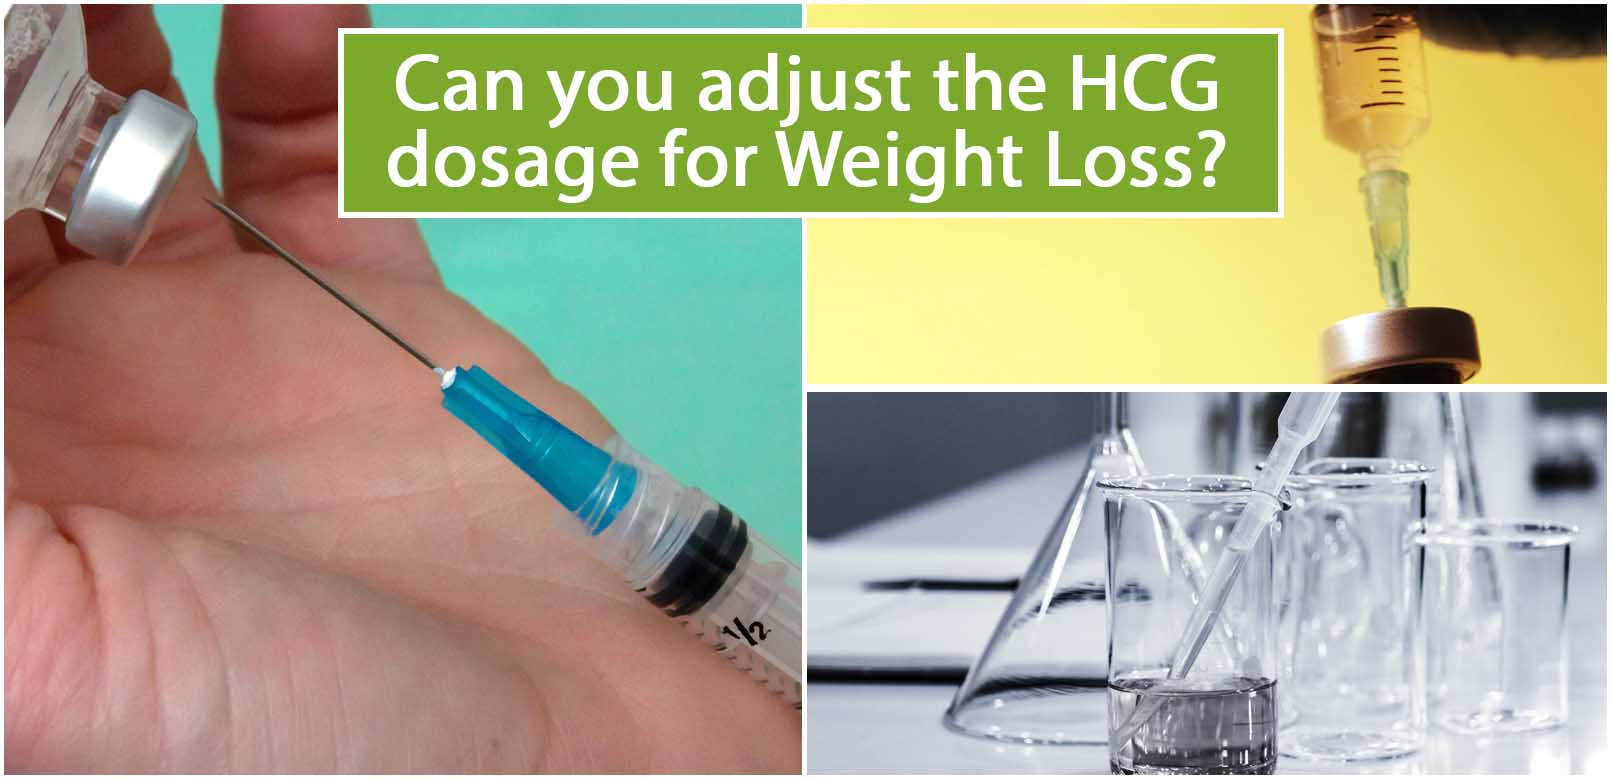 Can you adjust the HCG dosage for Weight Loss